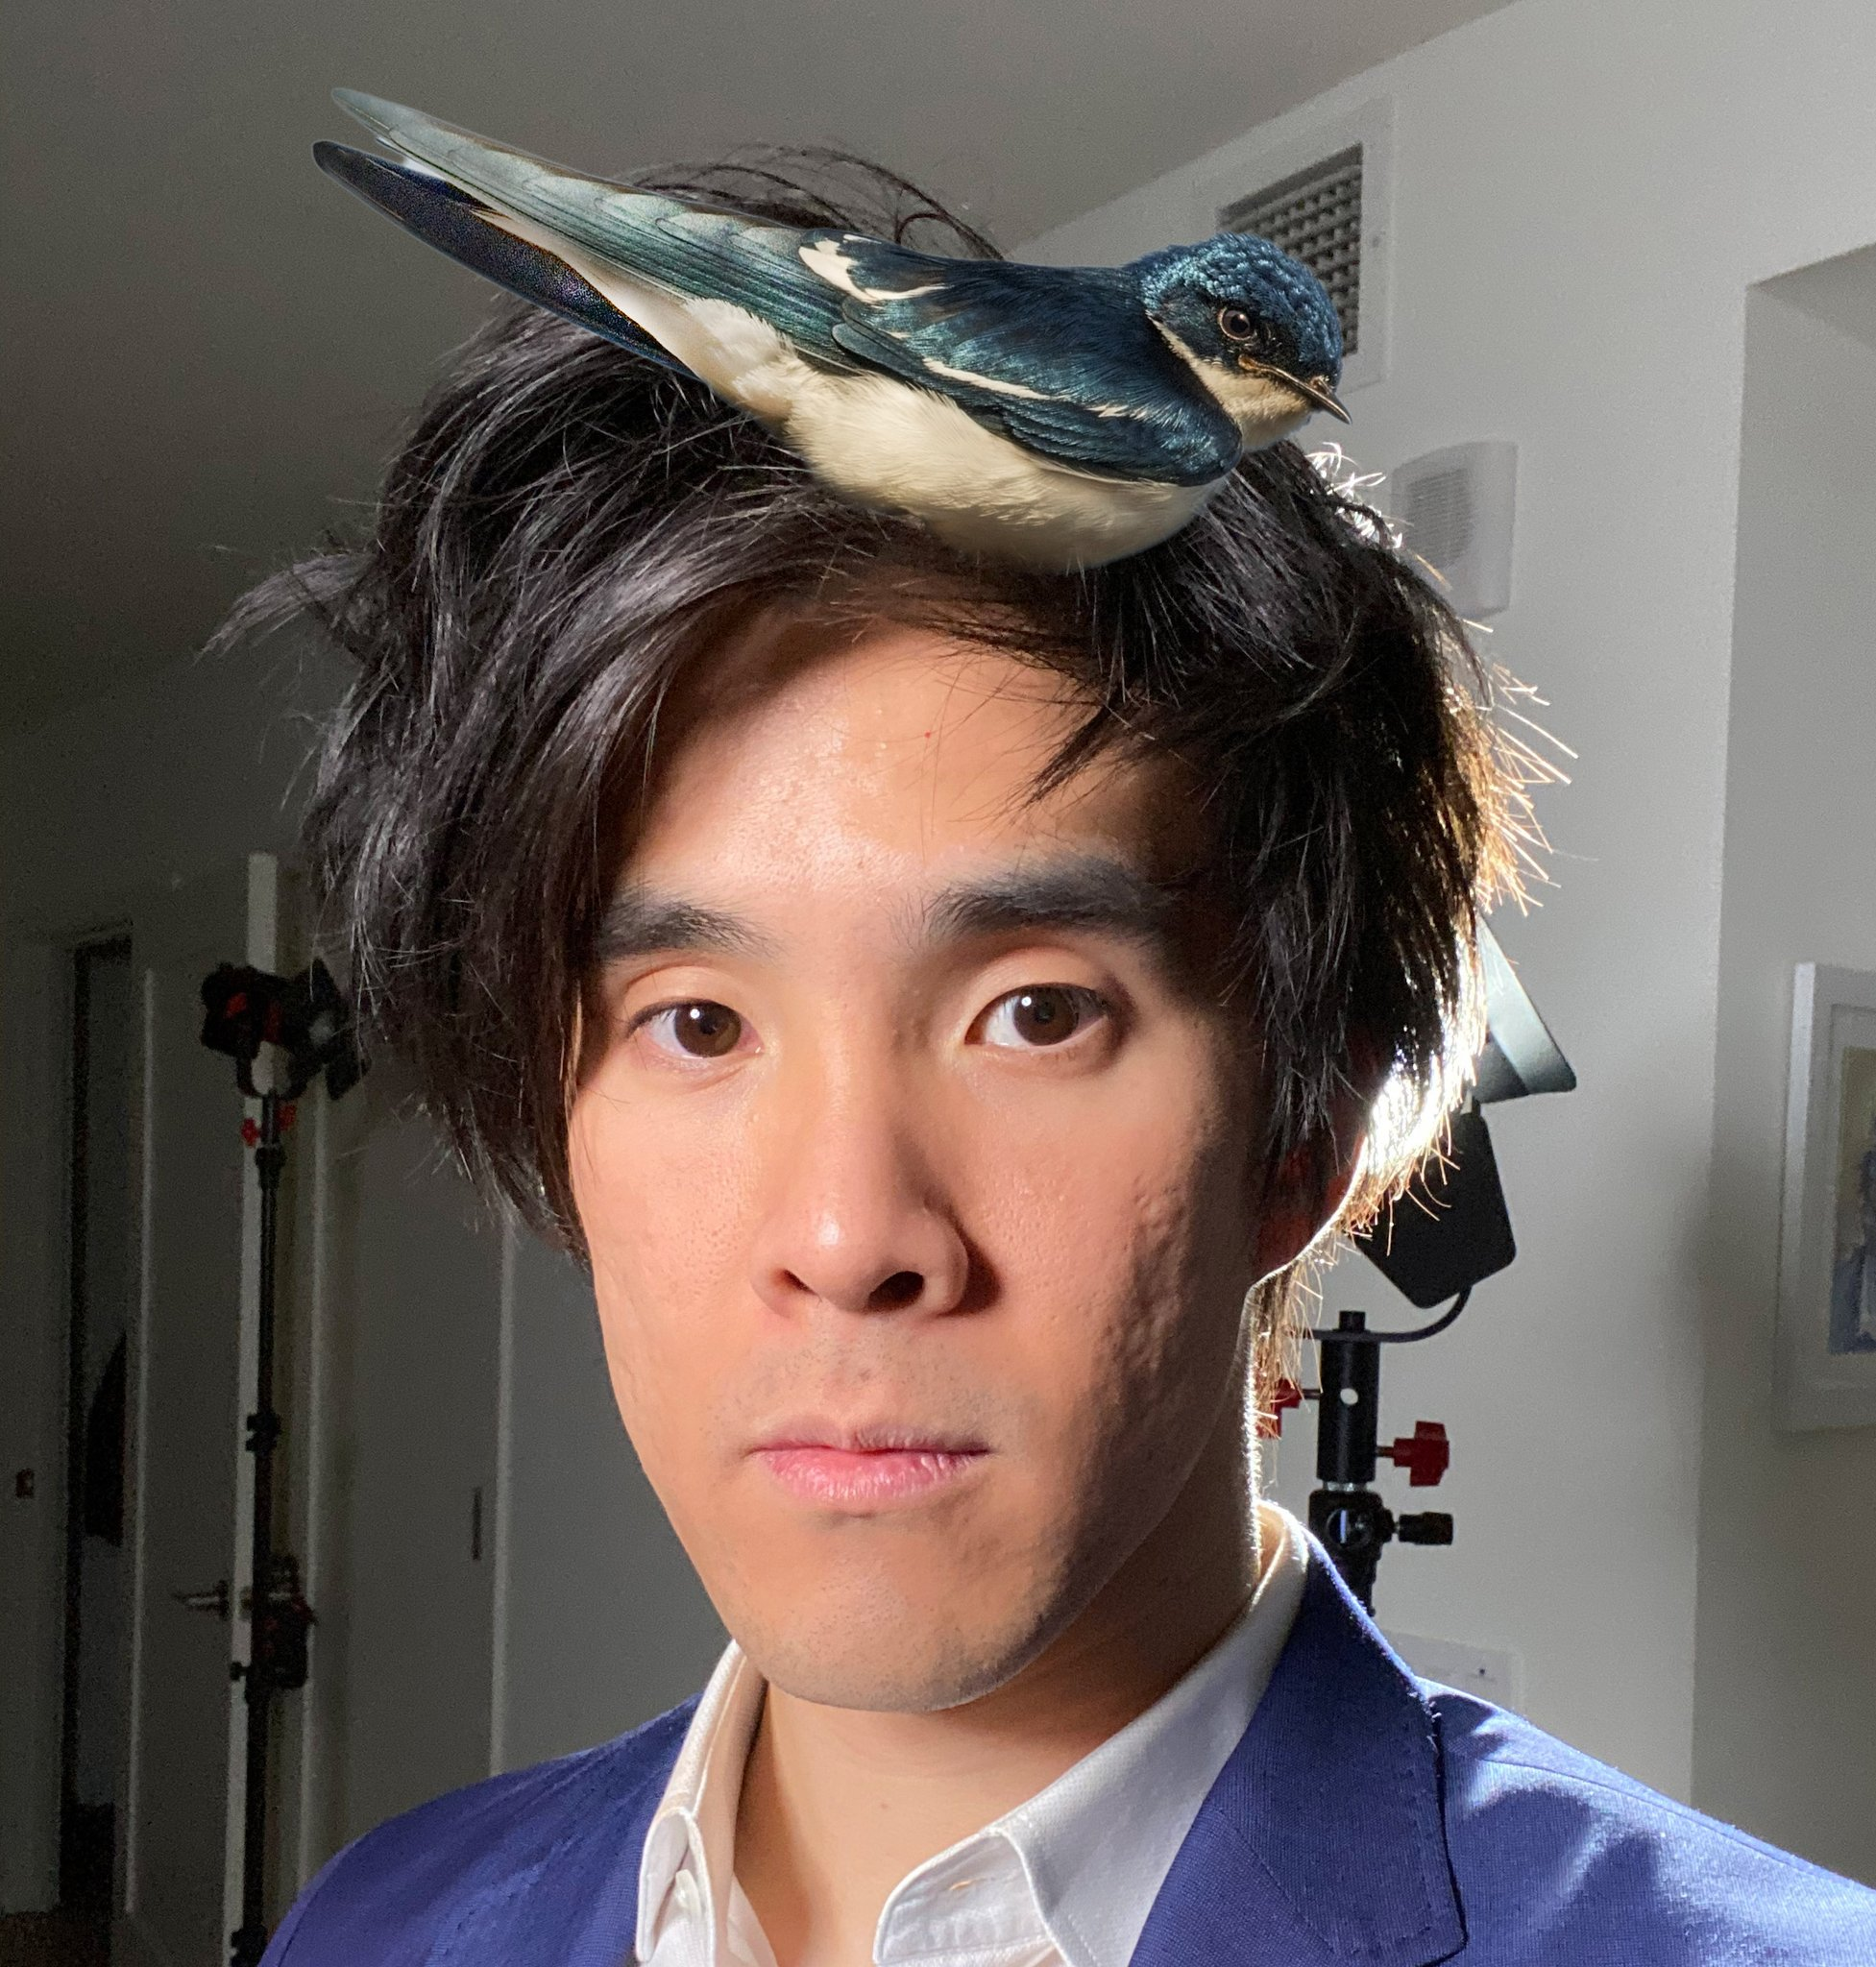 Chubbyemu On Twitter Nature Is Healing Chubbyemu is the nickname of youtuber bernard hsu who is primarily known for his popular analysis and explanation of medical cases. chubbyemu on twitter nature is